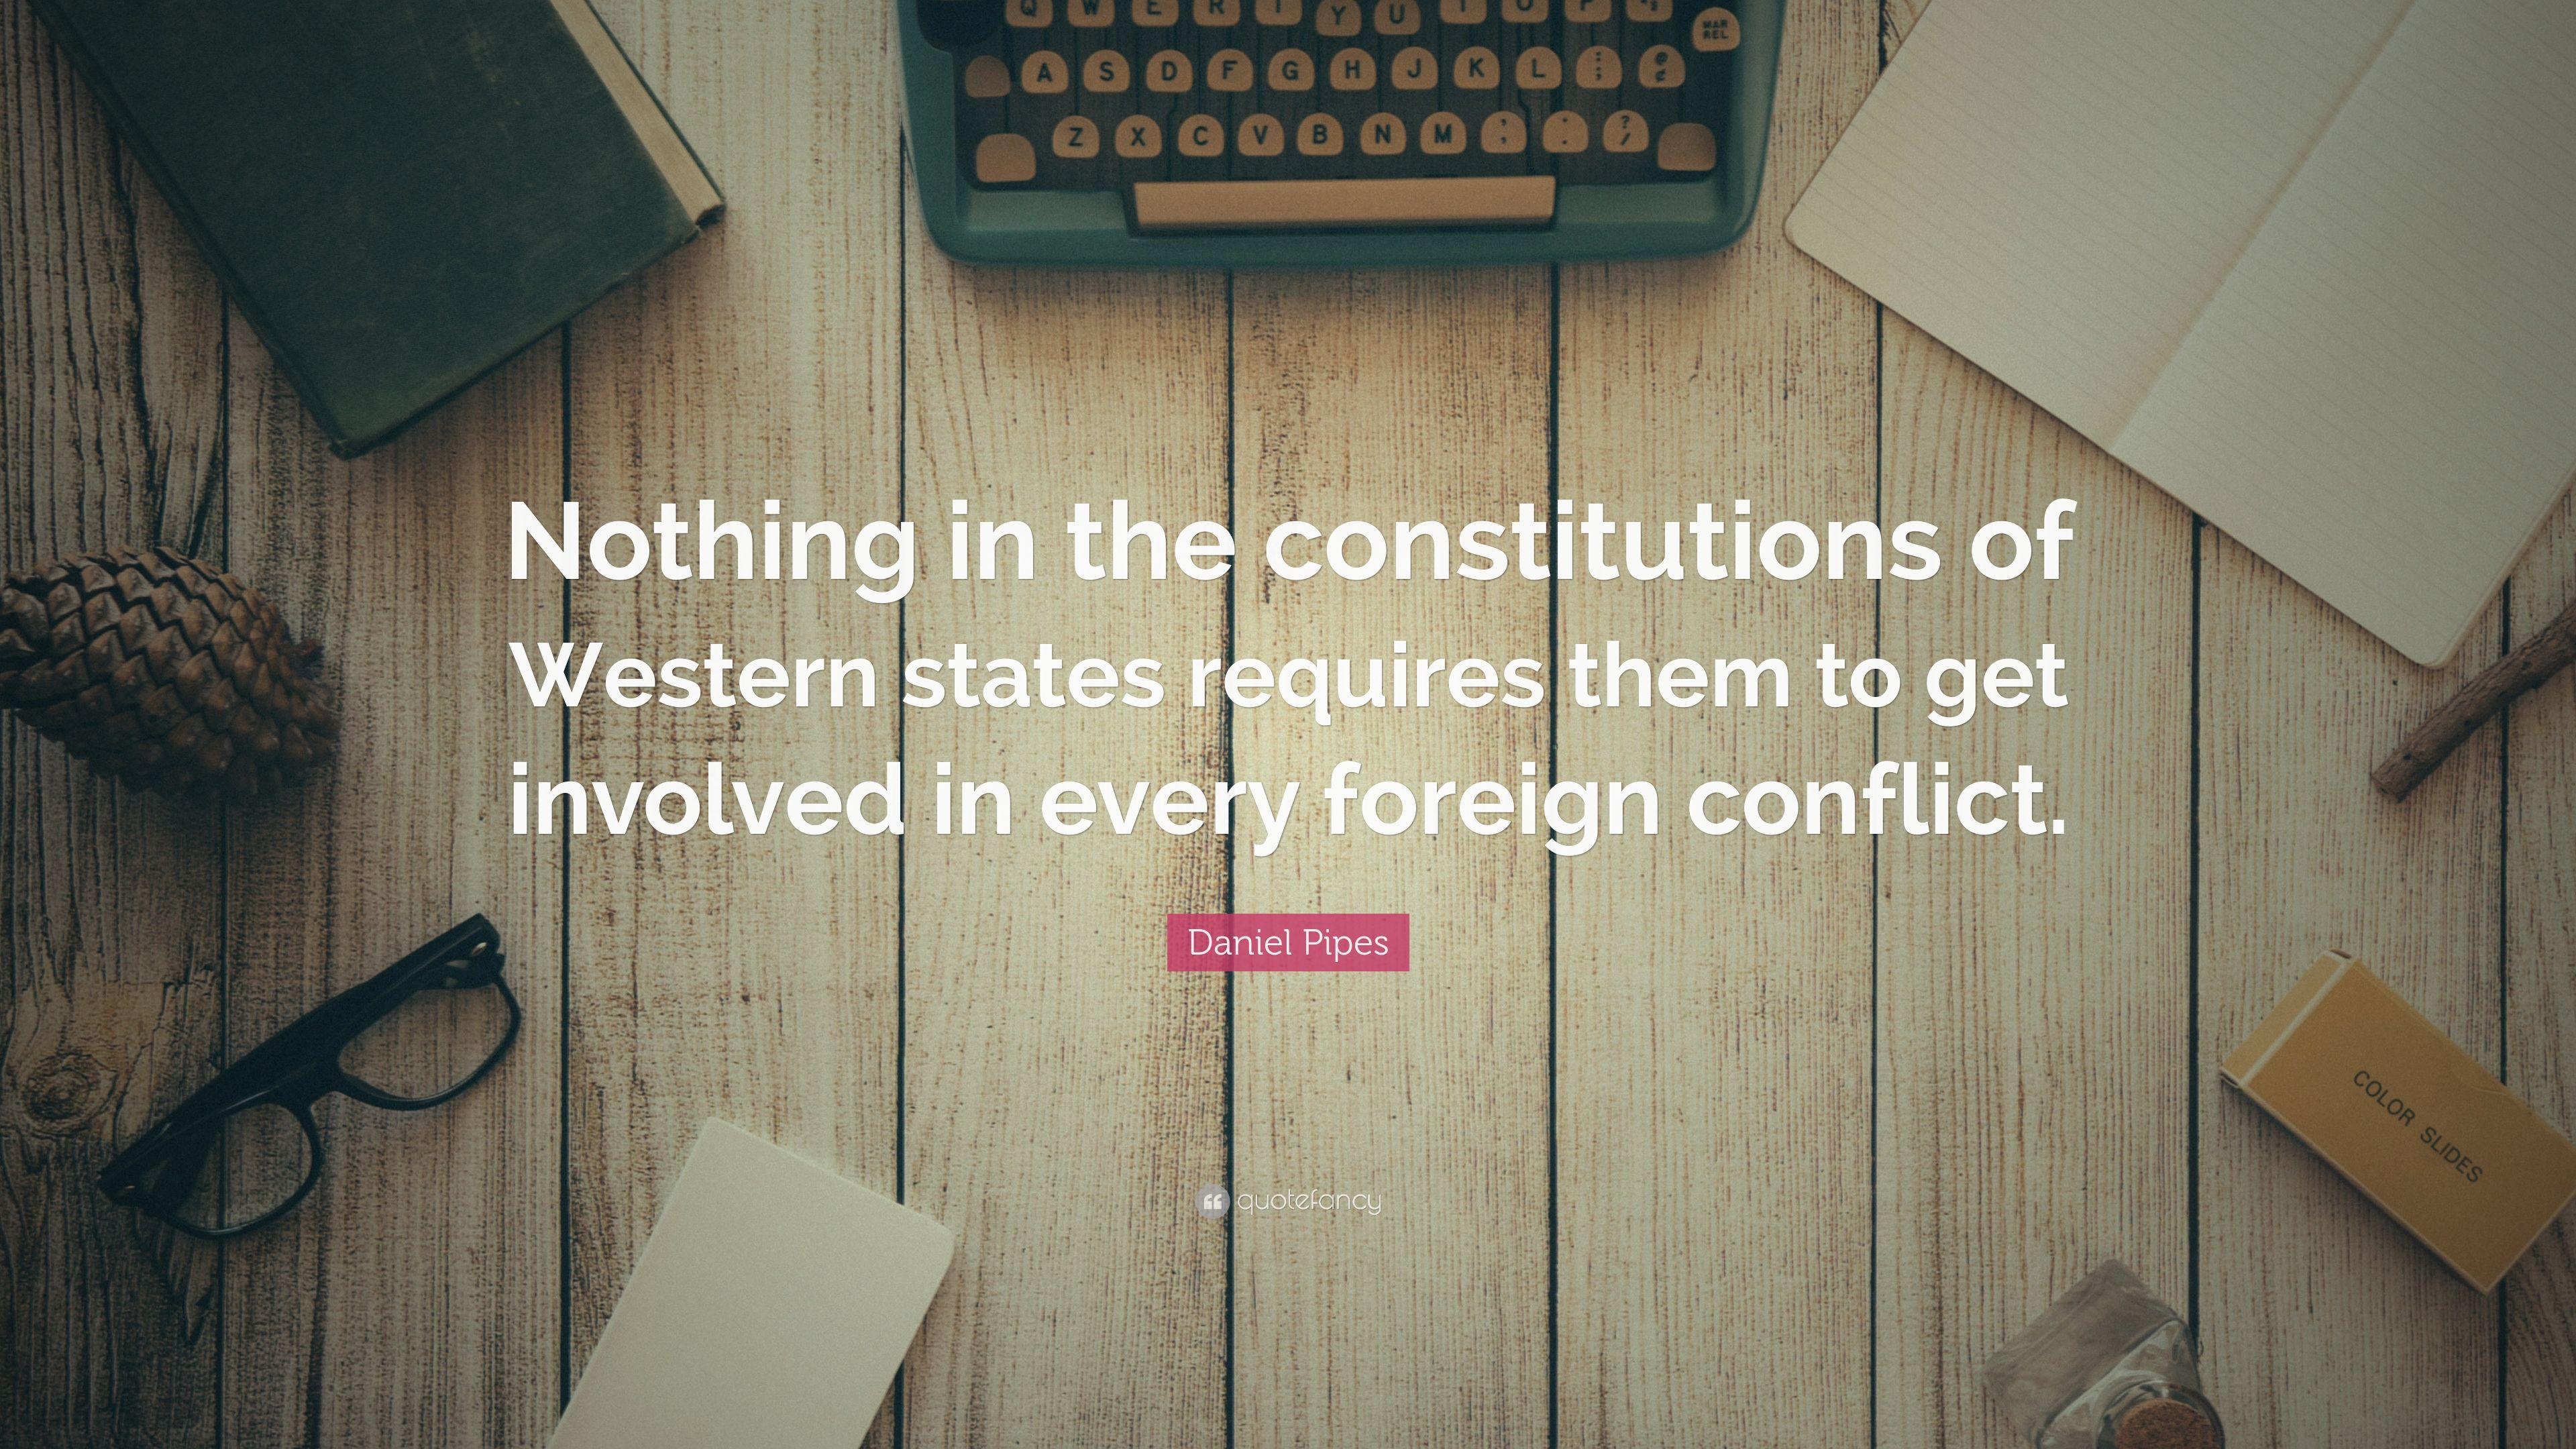 Daniel Pipes E Nothing In The Constitutions Of Western States Requires Them To Get